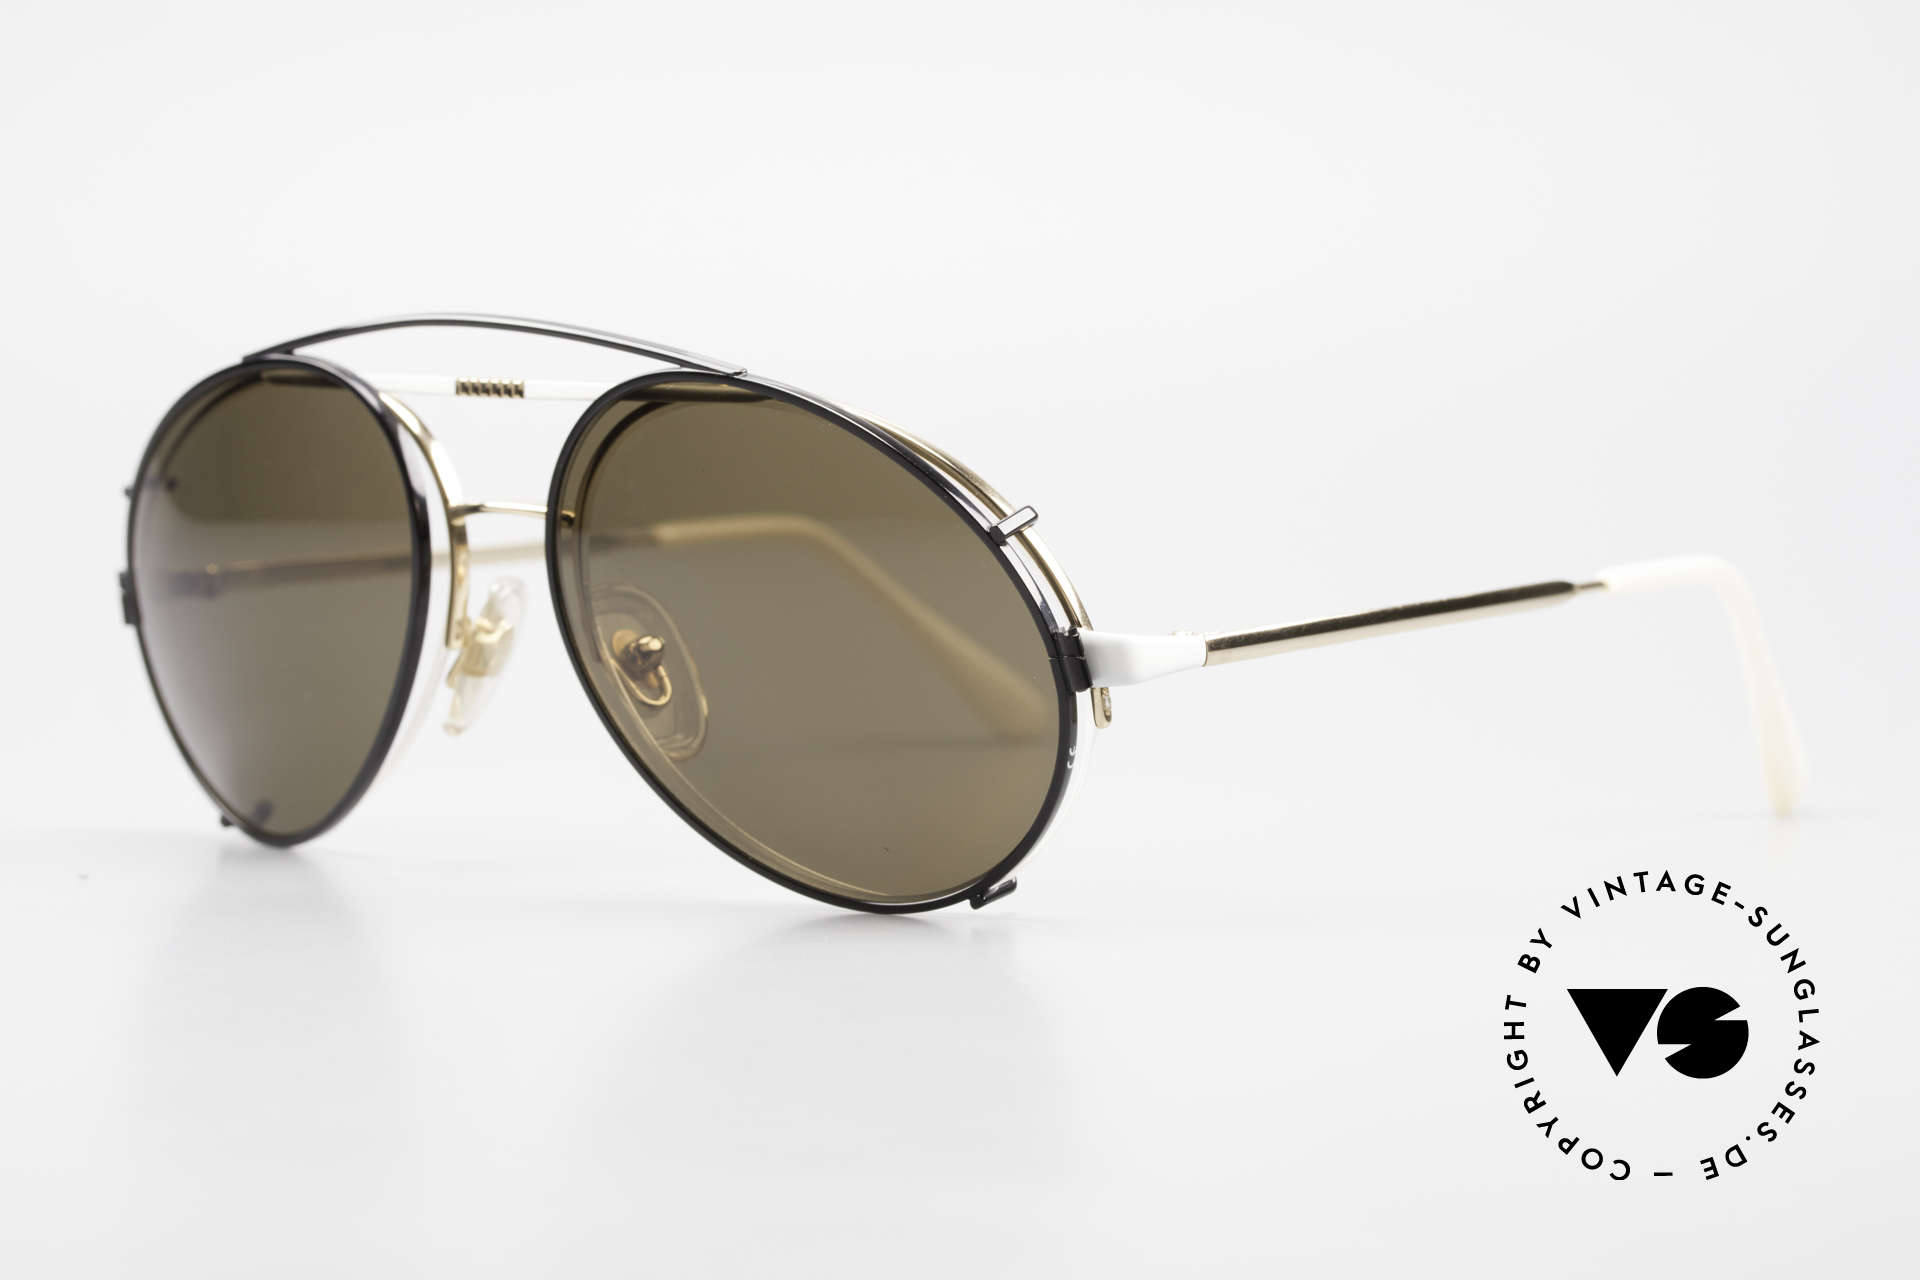 Bugatti 65787 Semi Rimless Frame With Clip, white & gold frame with black clip-on (100% UV), Made for Men